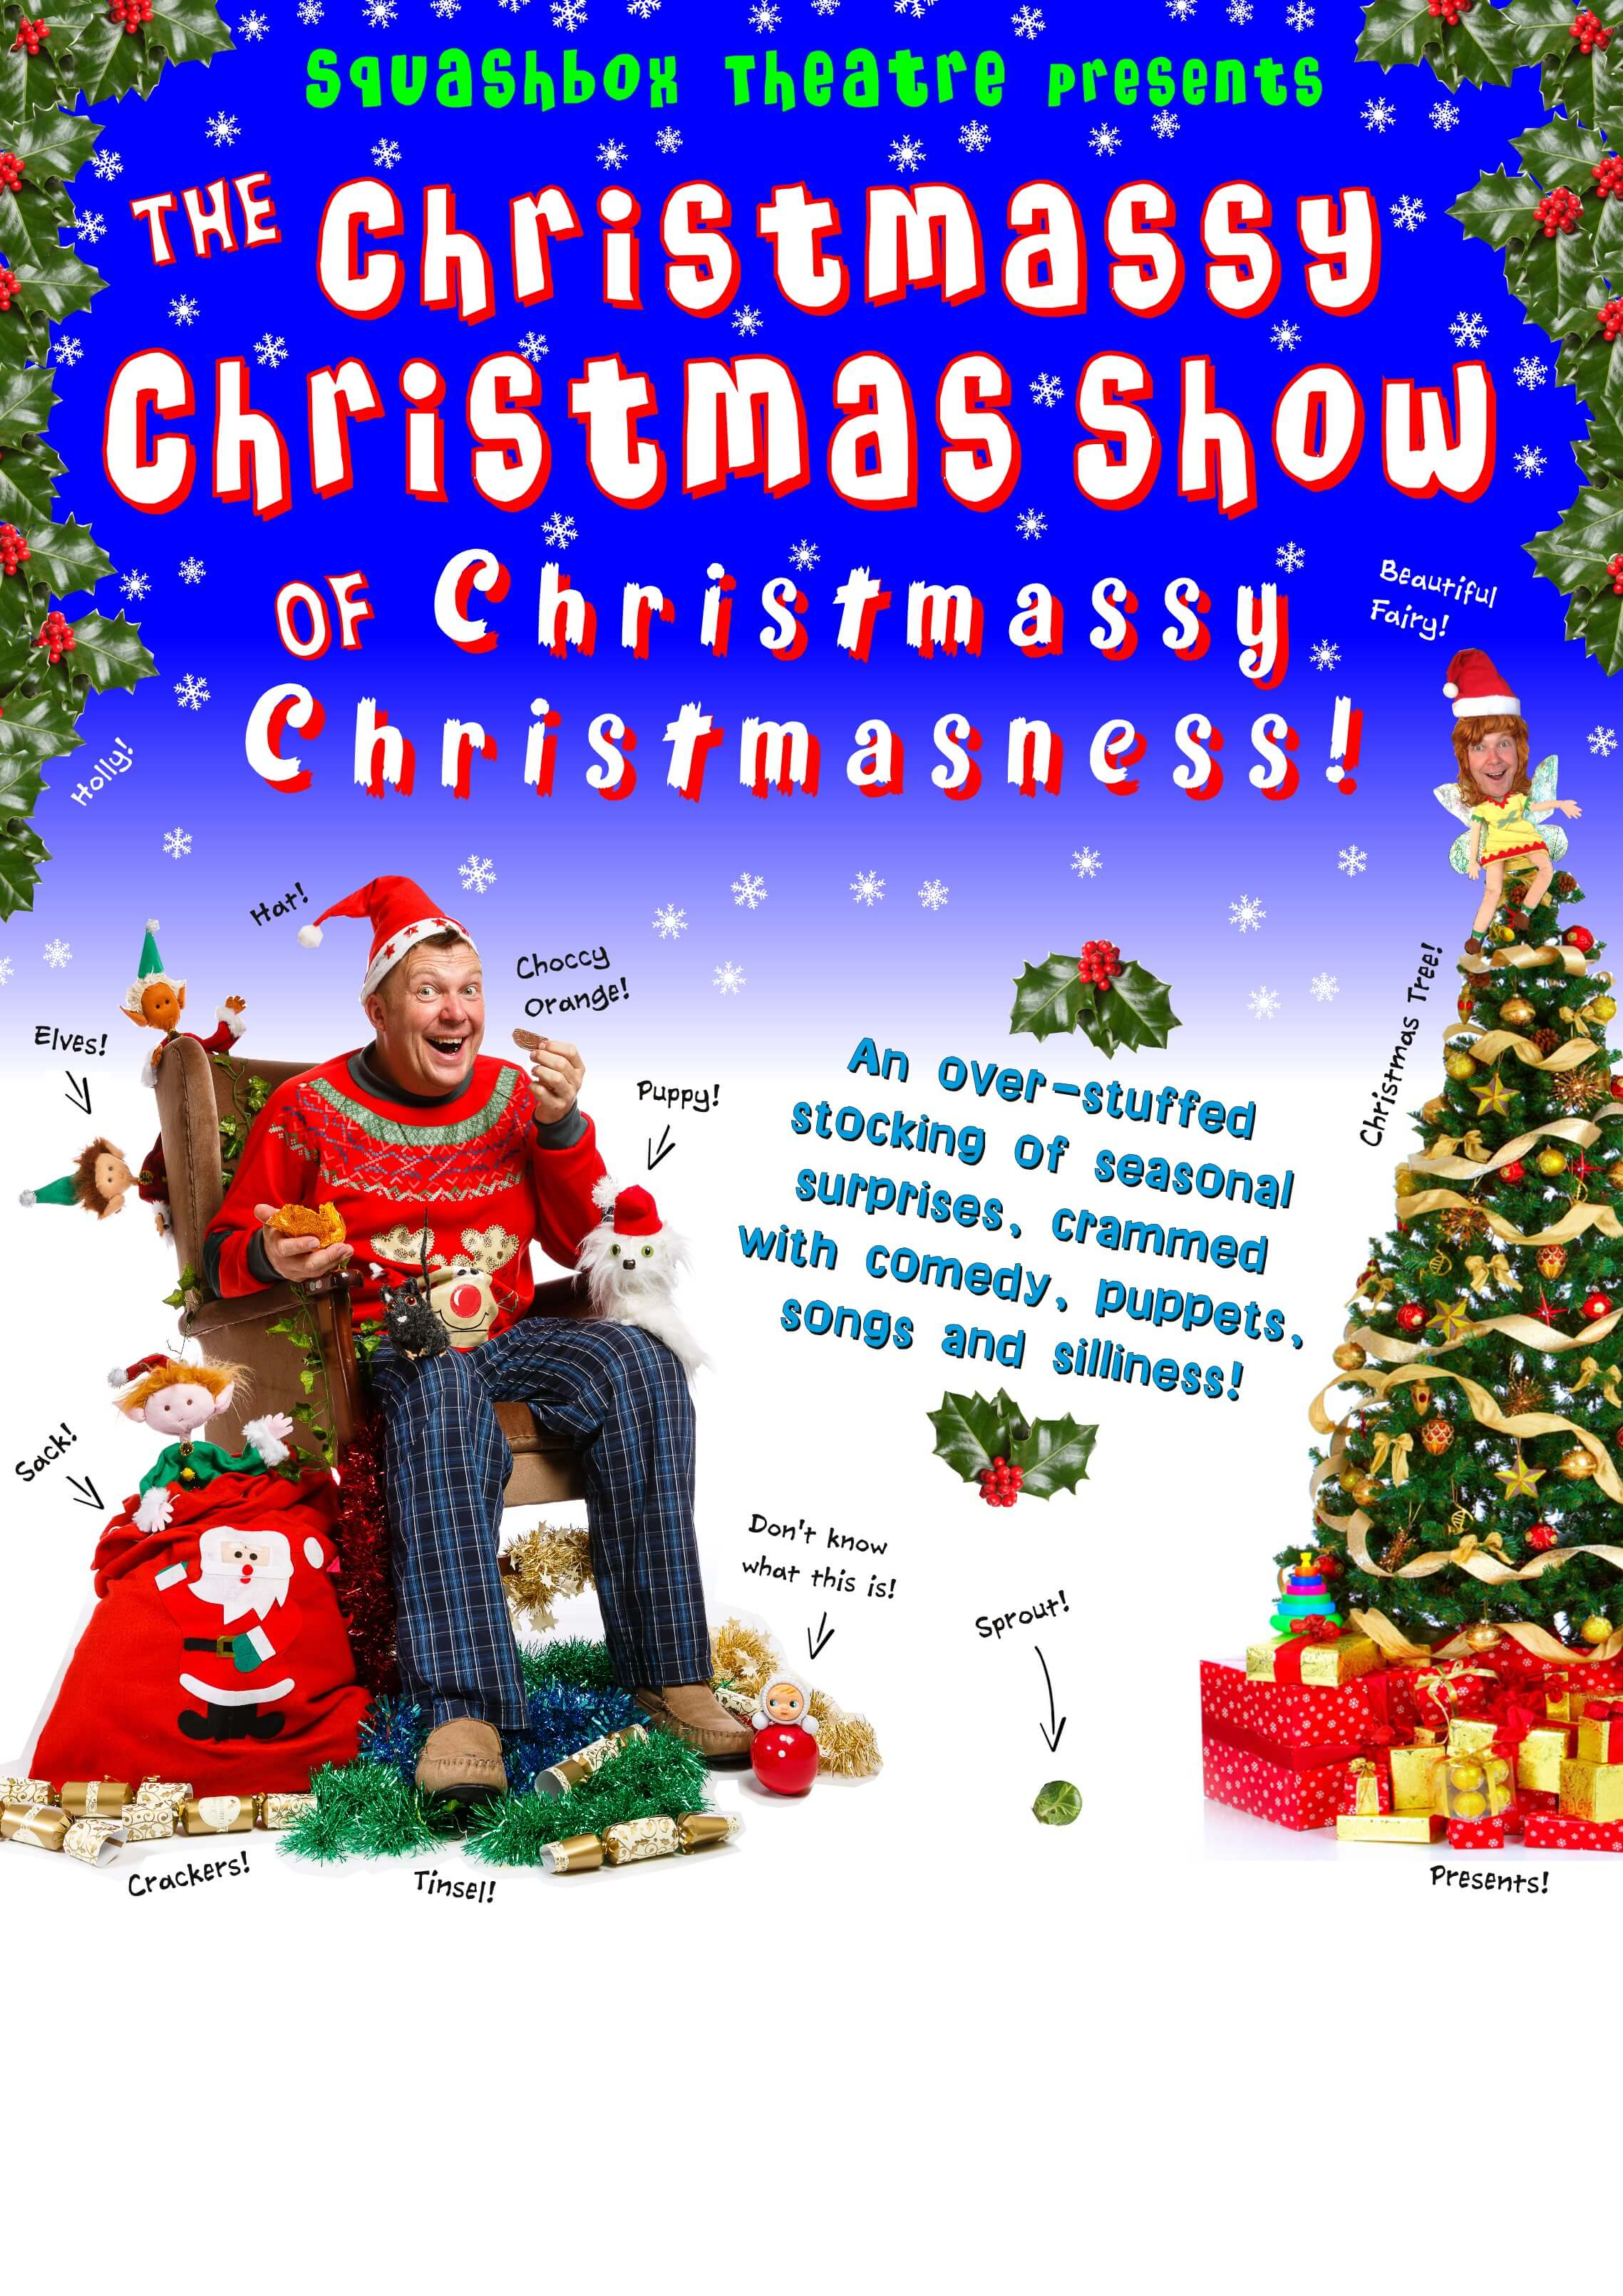 The Christmassy Christmas Show of Christmassy Christmasness!